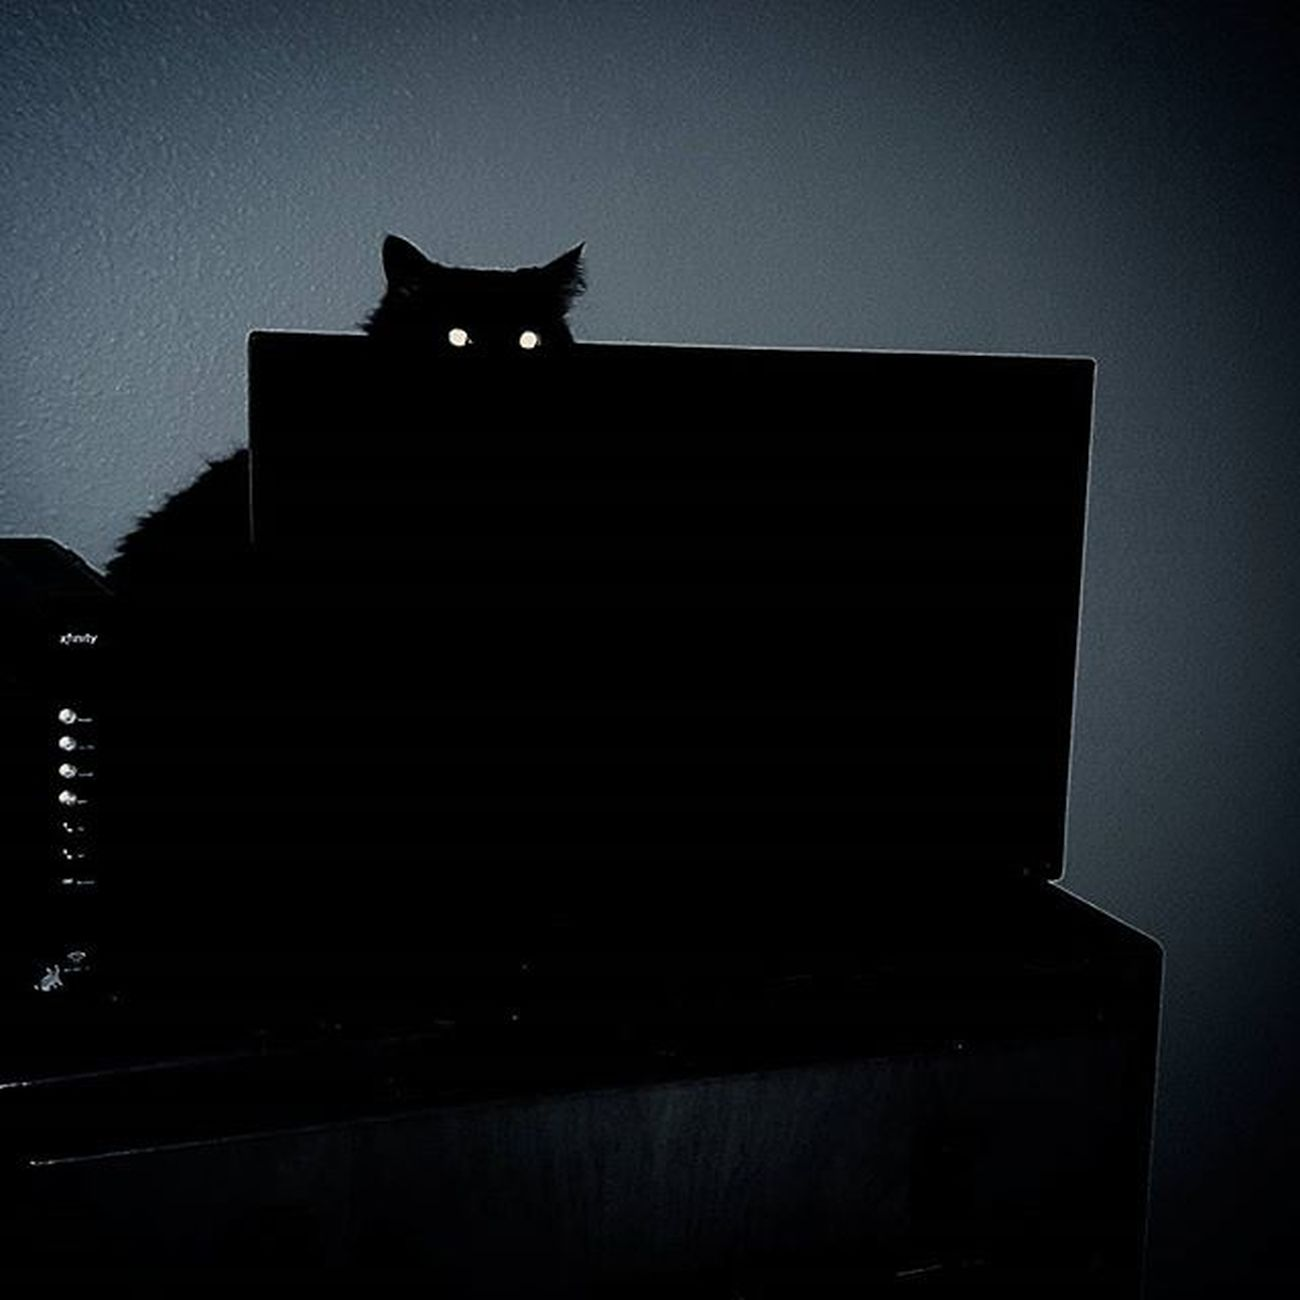 Petertheblackcat Iwilleatyoursoul Demoncat BLackCat Creepin